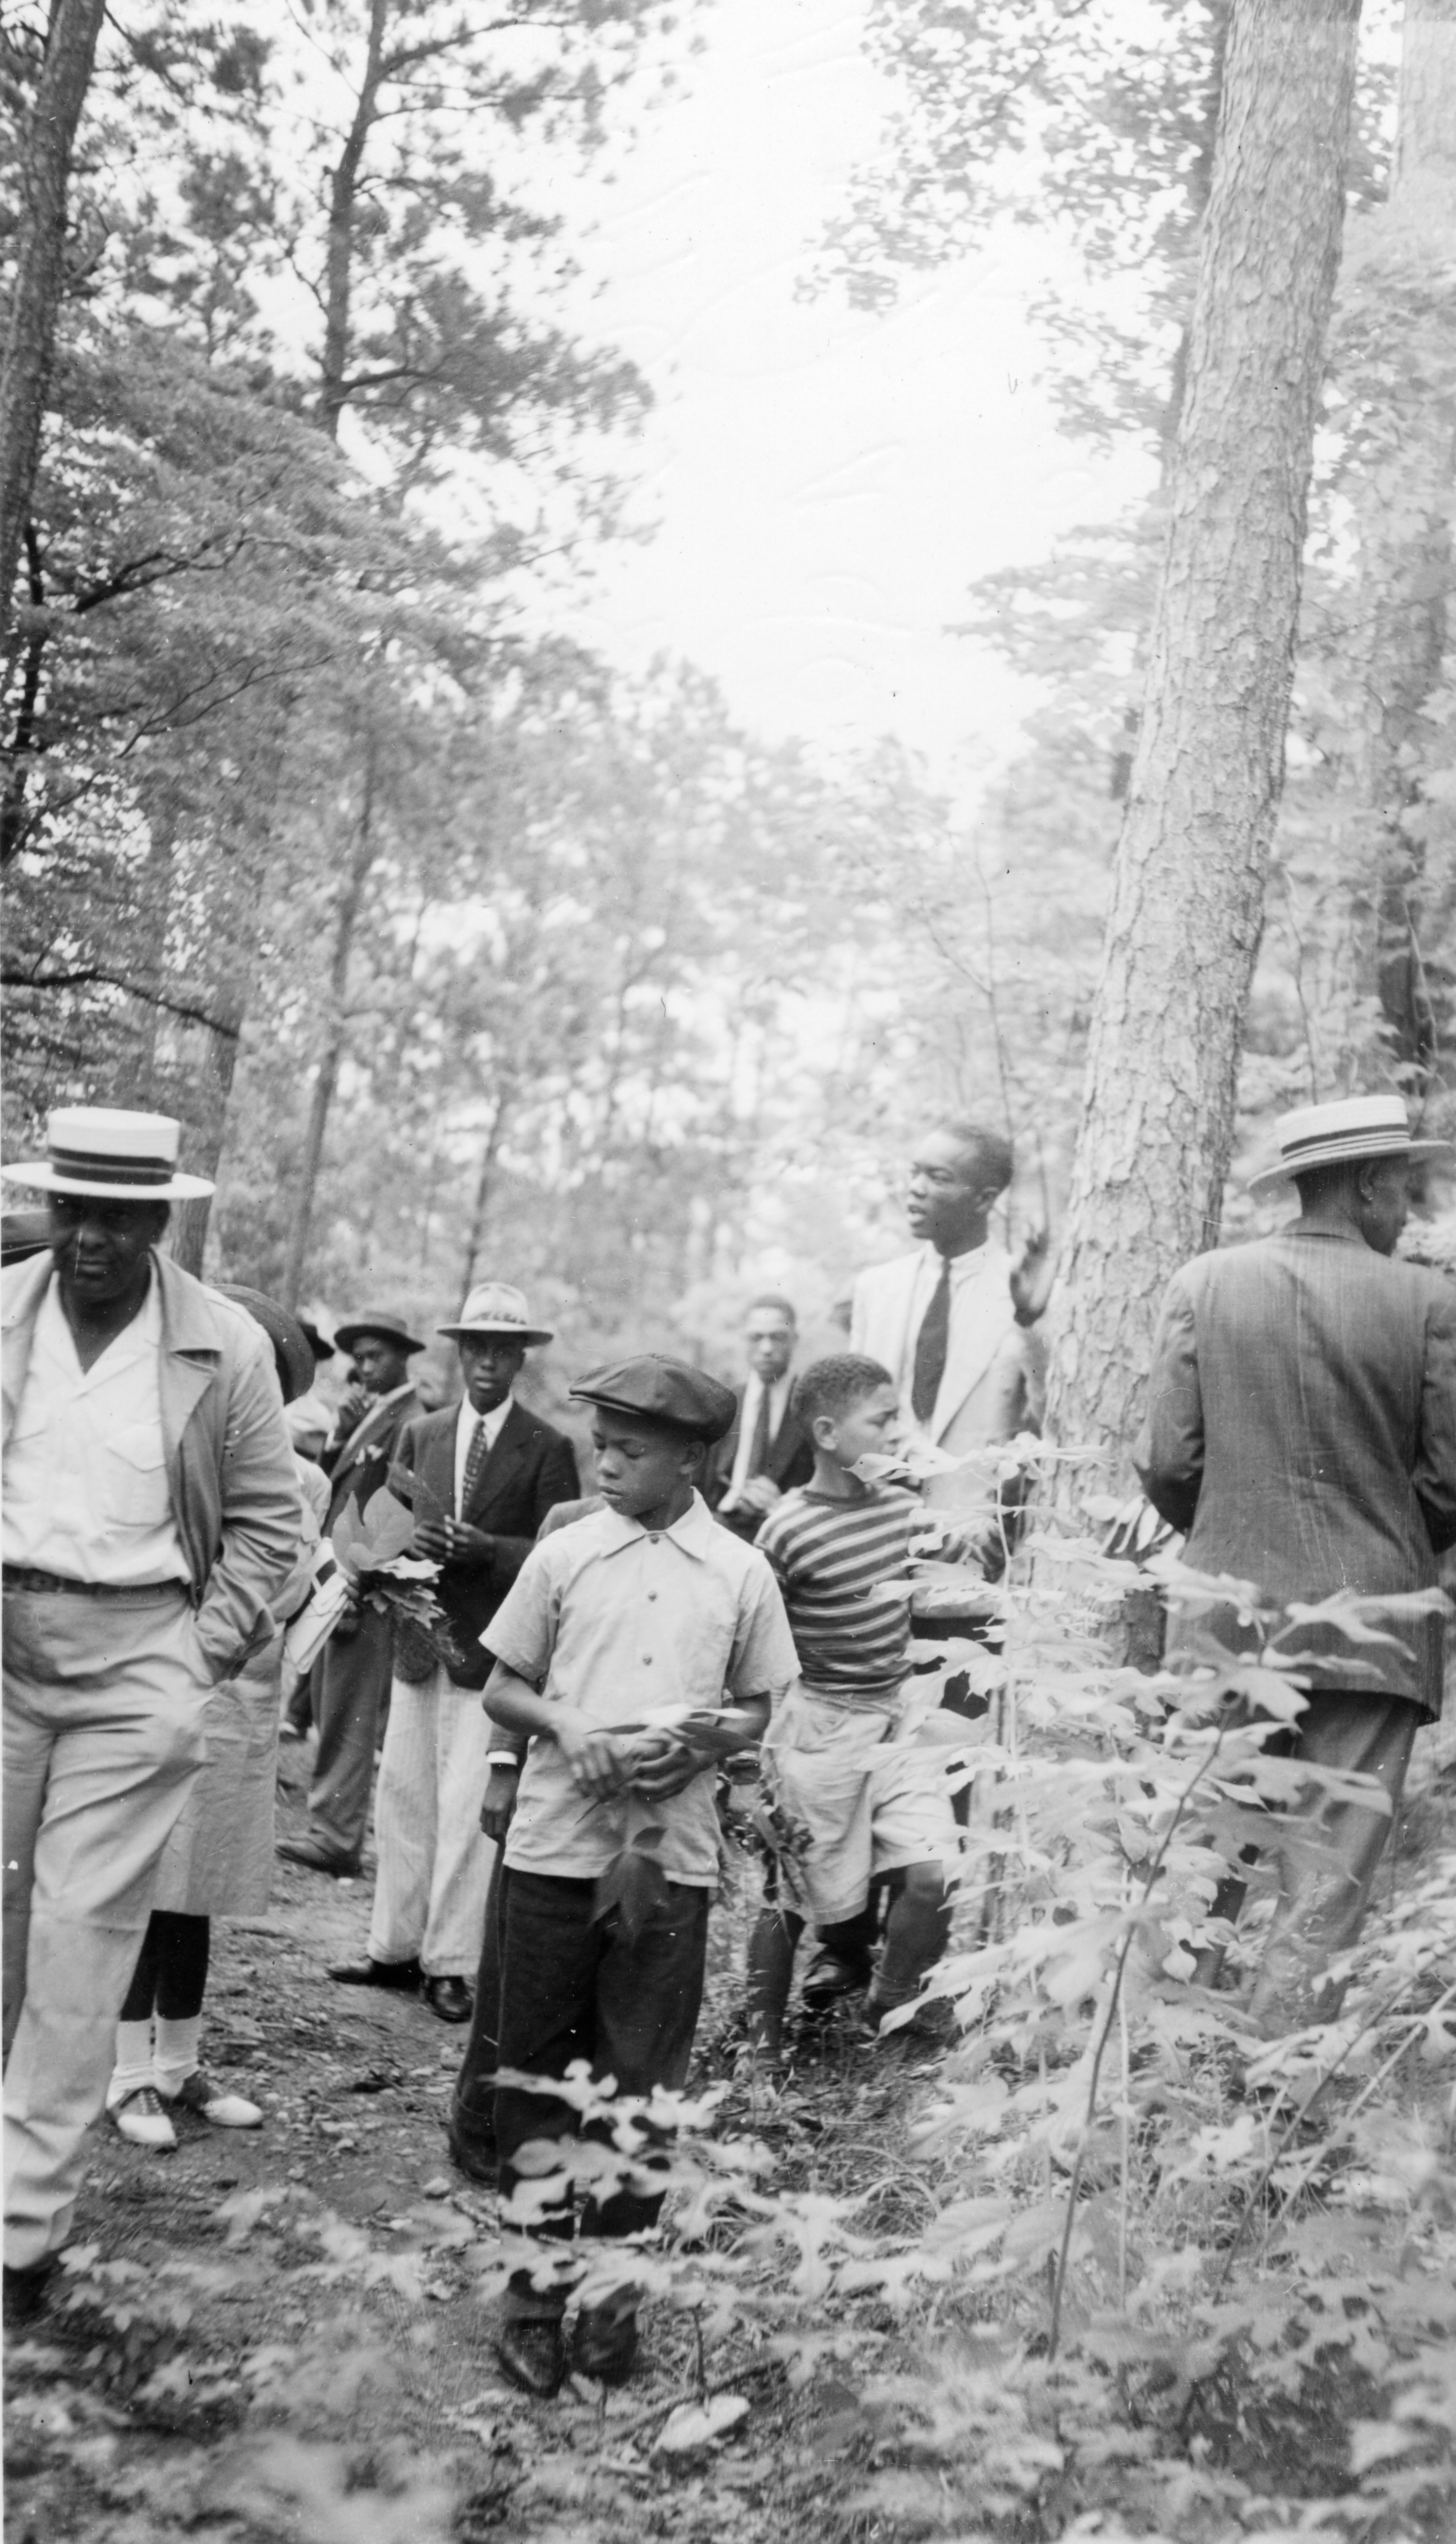 4-H club members searching the woods for leaf samples to identify trees in Wake County, July 14-17, 1941